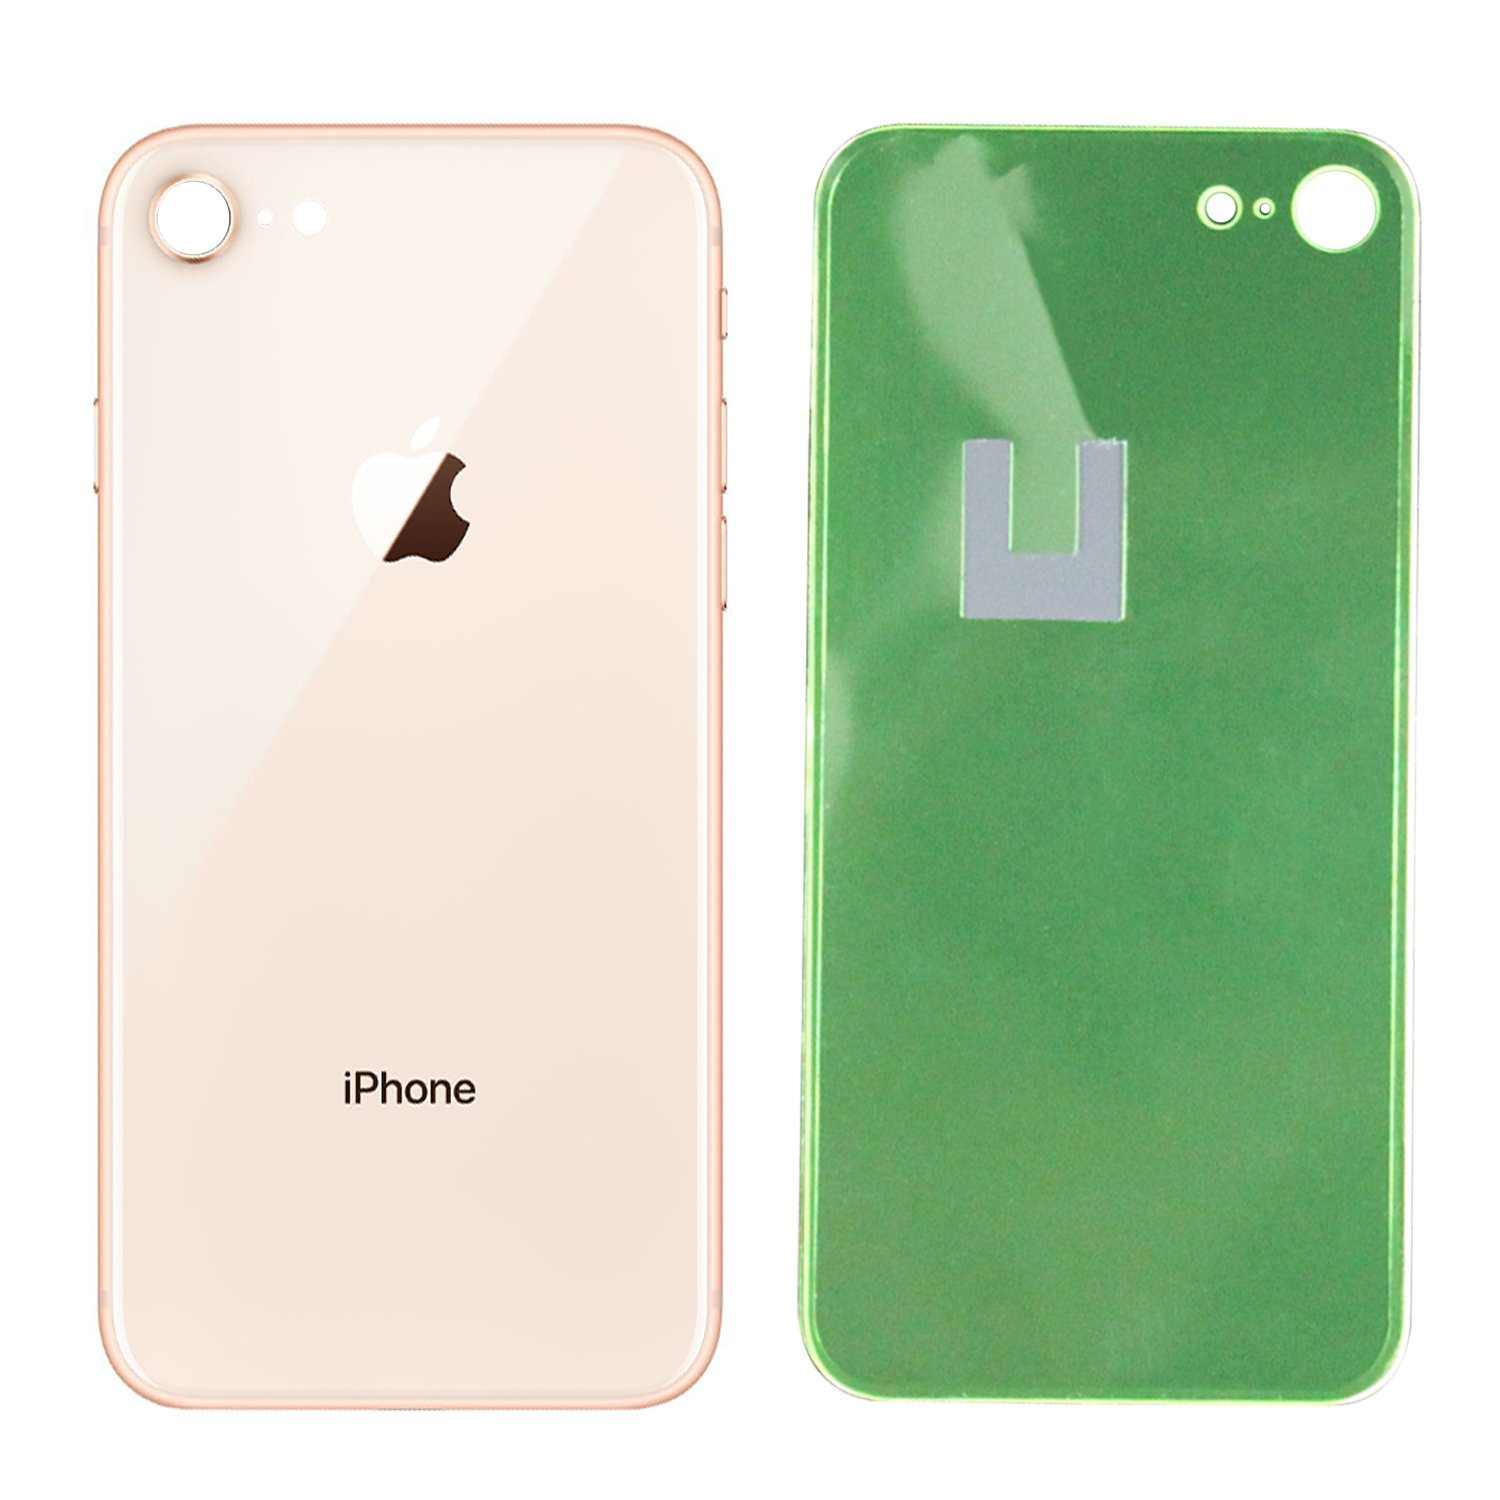 for iPhone 8 Back Glass Replacement OEM Quality Back Glass w//Adhesive /& Removal Tool Gold